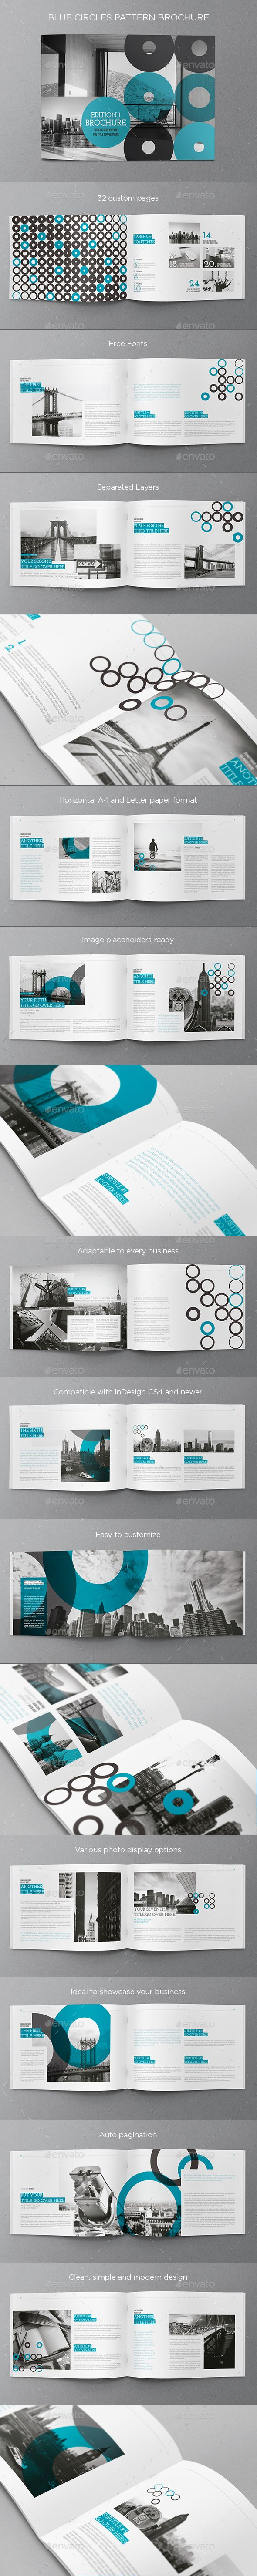 Unusual 100 Greatest Resume Words Tall 101 Modern Resume Samples Rectangular 1st Birthday Invitations Templates 2013 Resume Writing Trends Old 2014 Calendar Template Free Coloured2014 Monthly Calendar Template 25  Best Ideas About Brochure Printing On Pinterest | Booklet ..